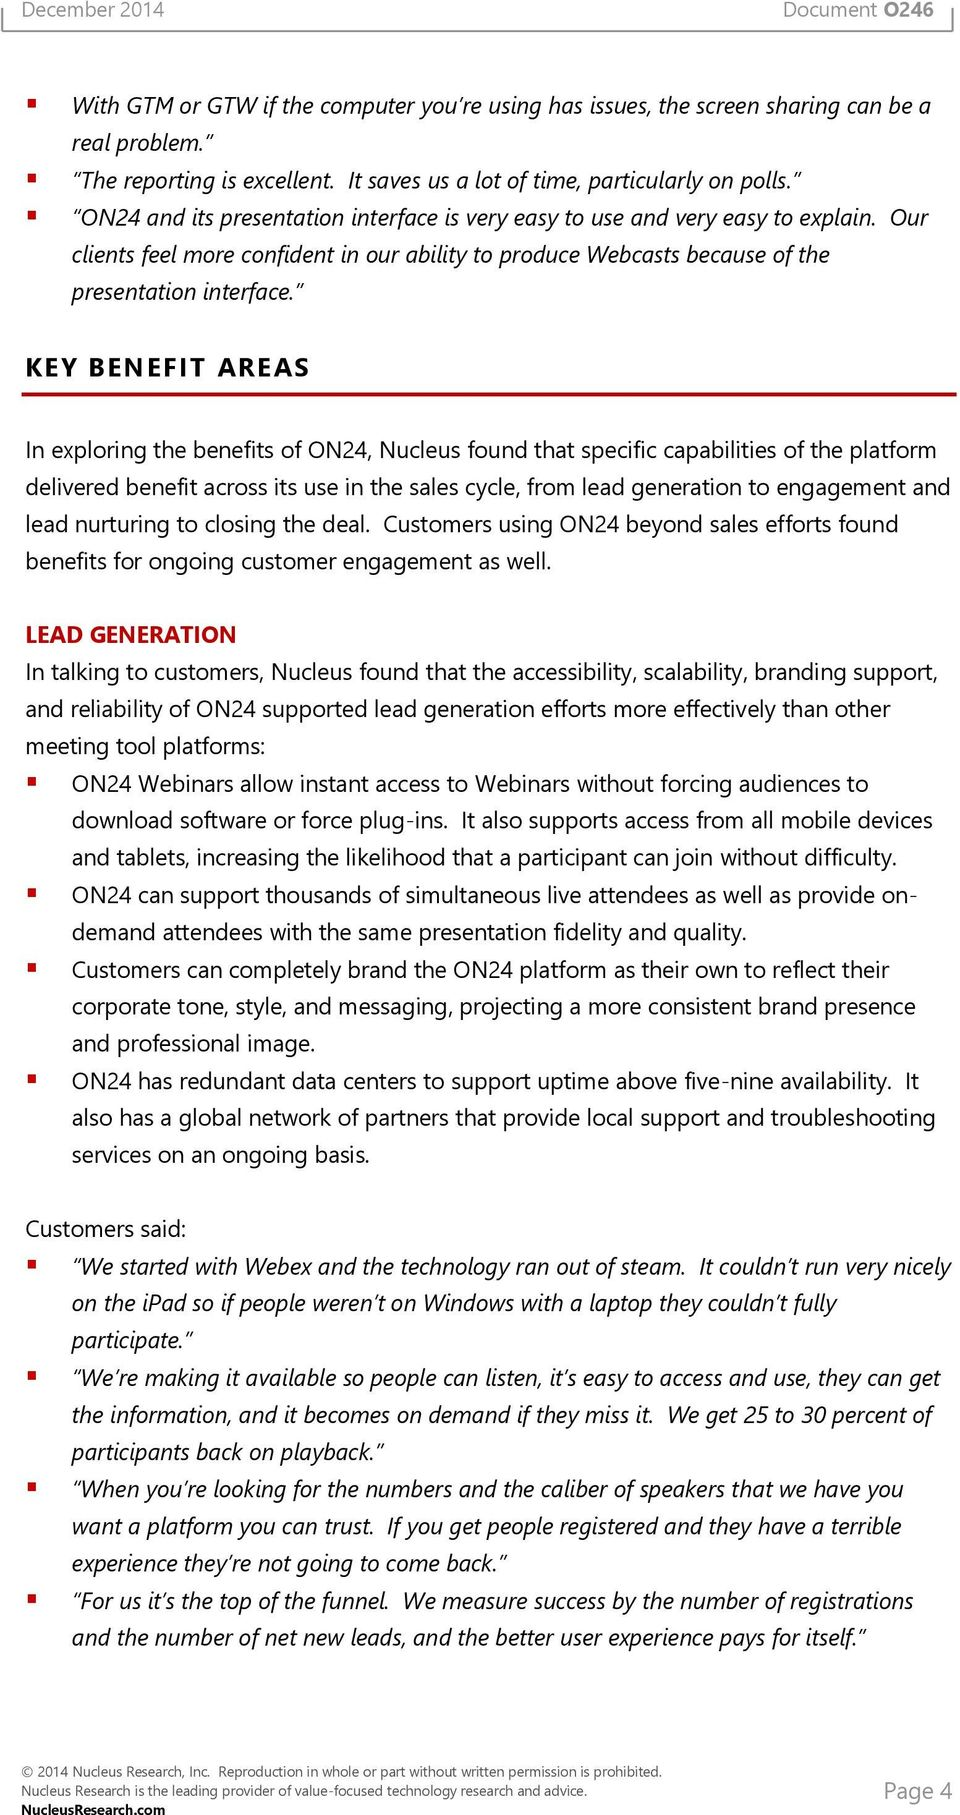 KEY BENEFIT AREAS In exploring the benefits of ON24, Nucleus found that specific capabilities of the platform delivered benefit across its use in the sales cycle, from lead generation to engagement